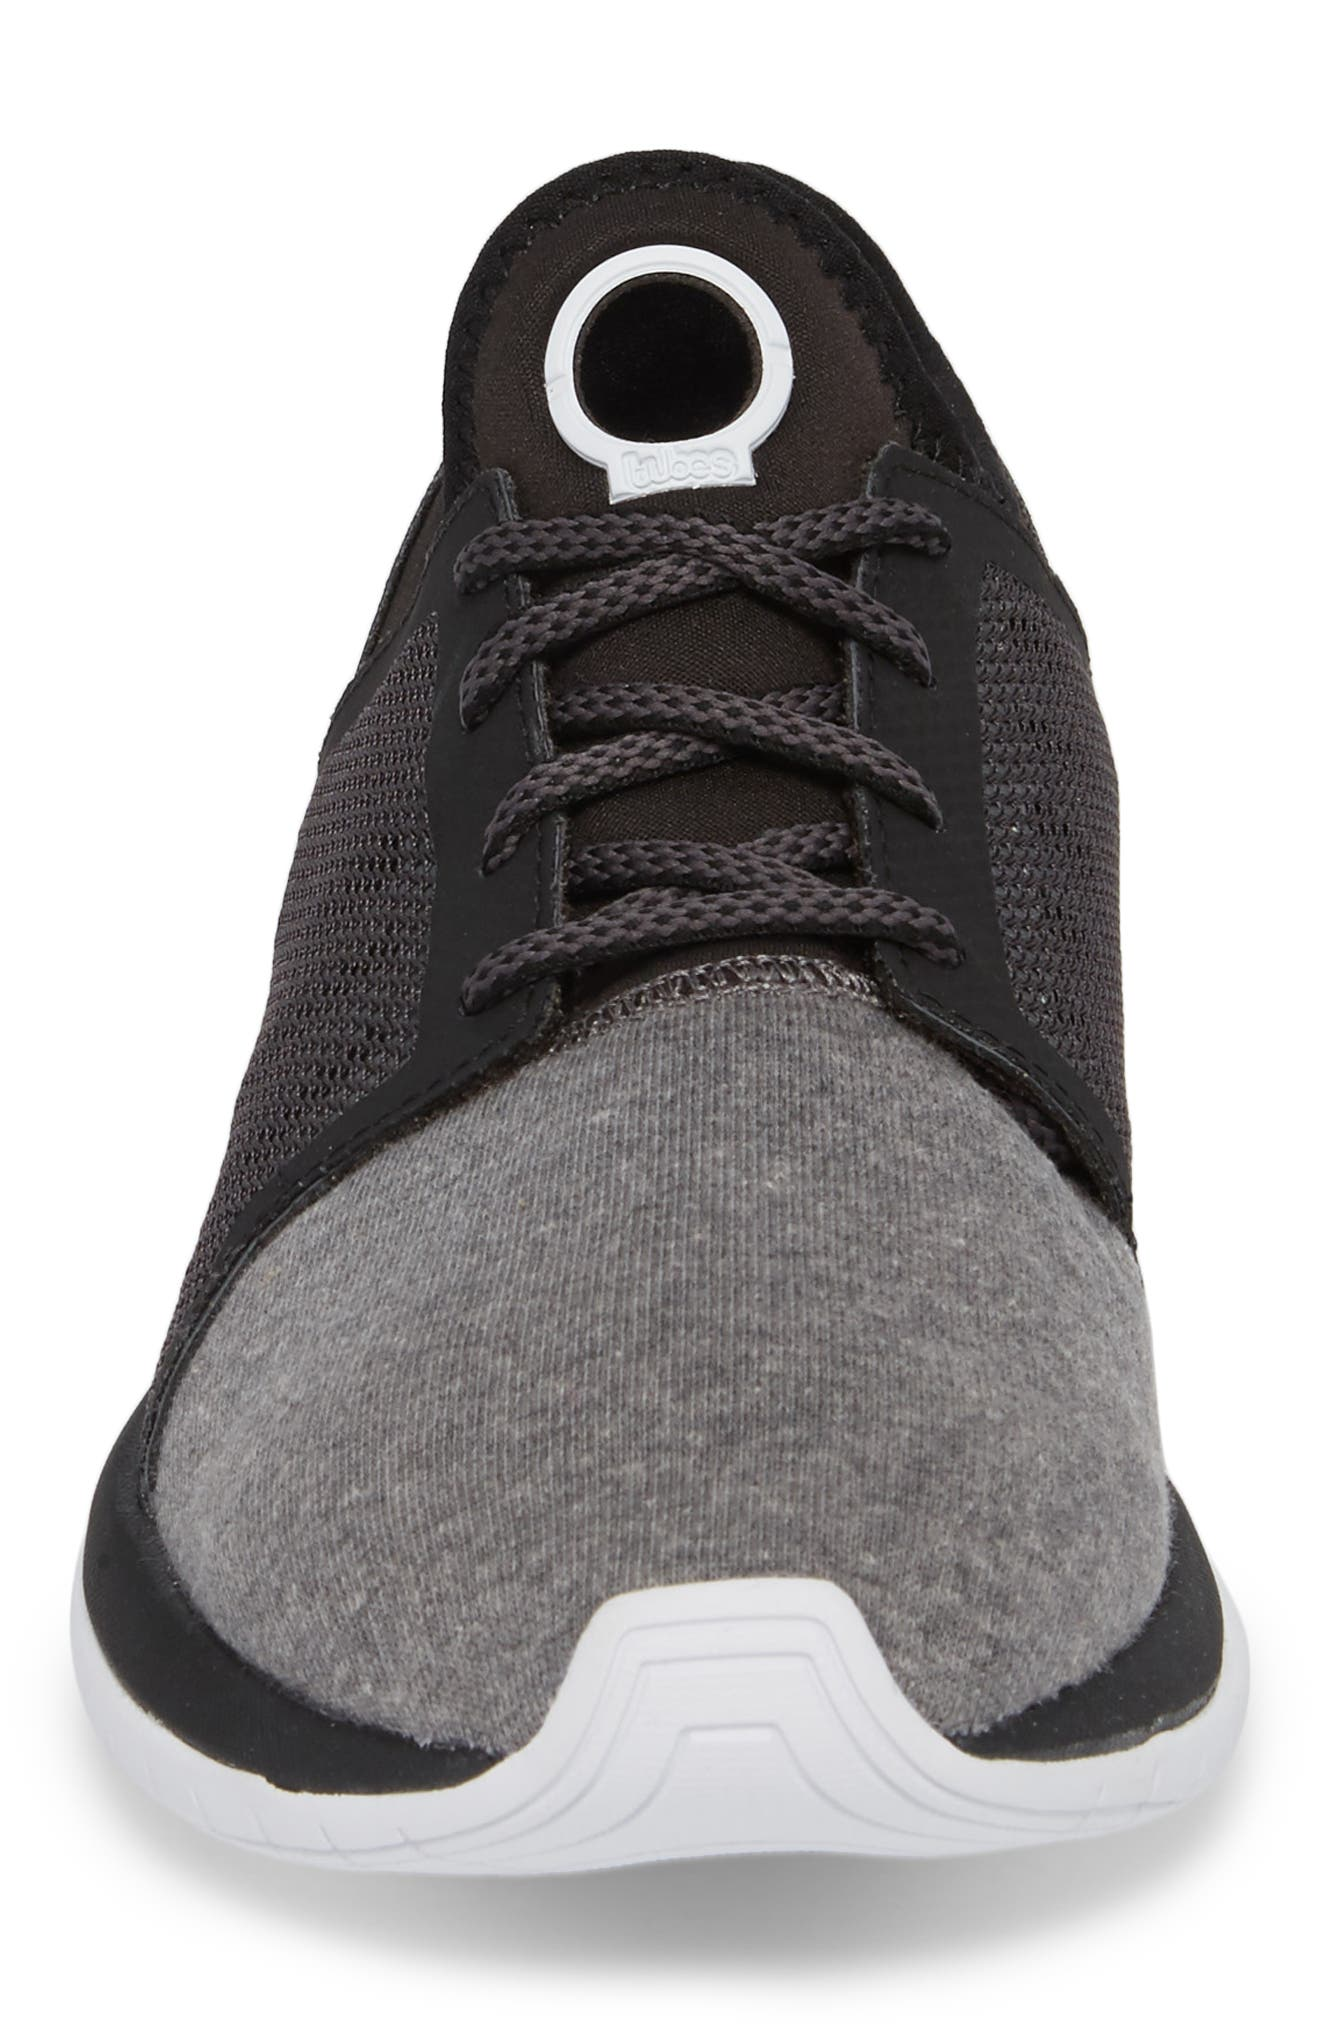 Tubes Millennia Sneaker,                             Alternate thumbnail 4, color,                             BLACK/ WHITE